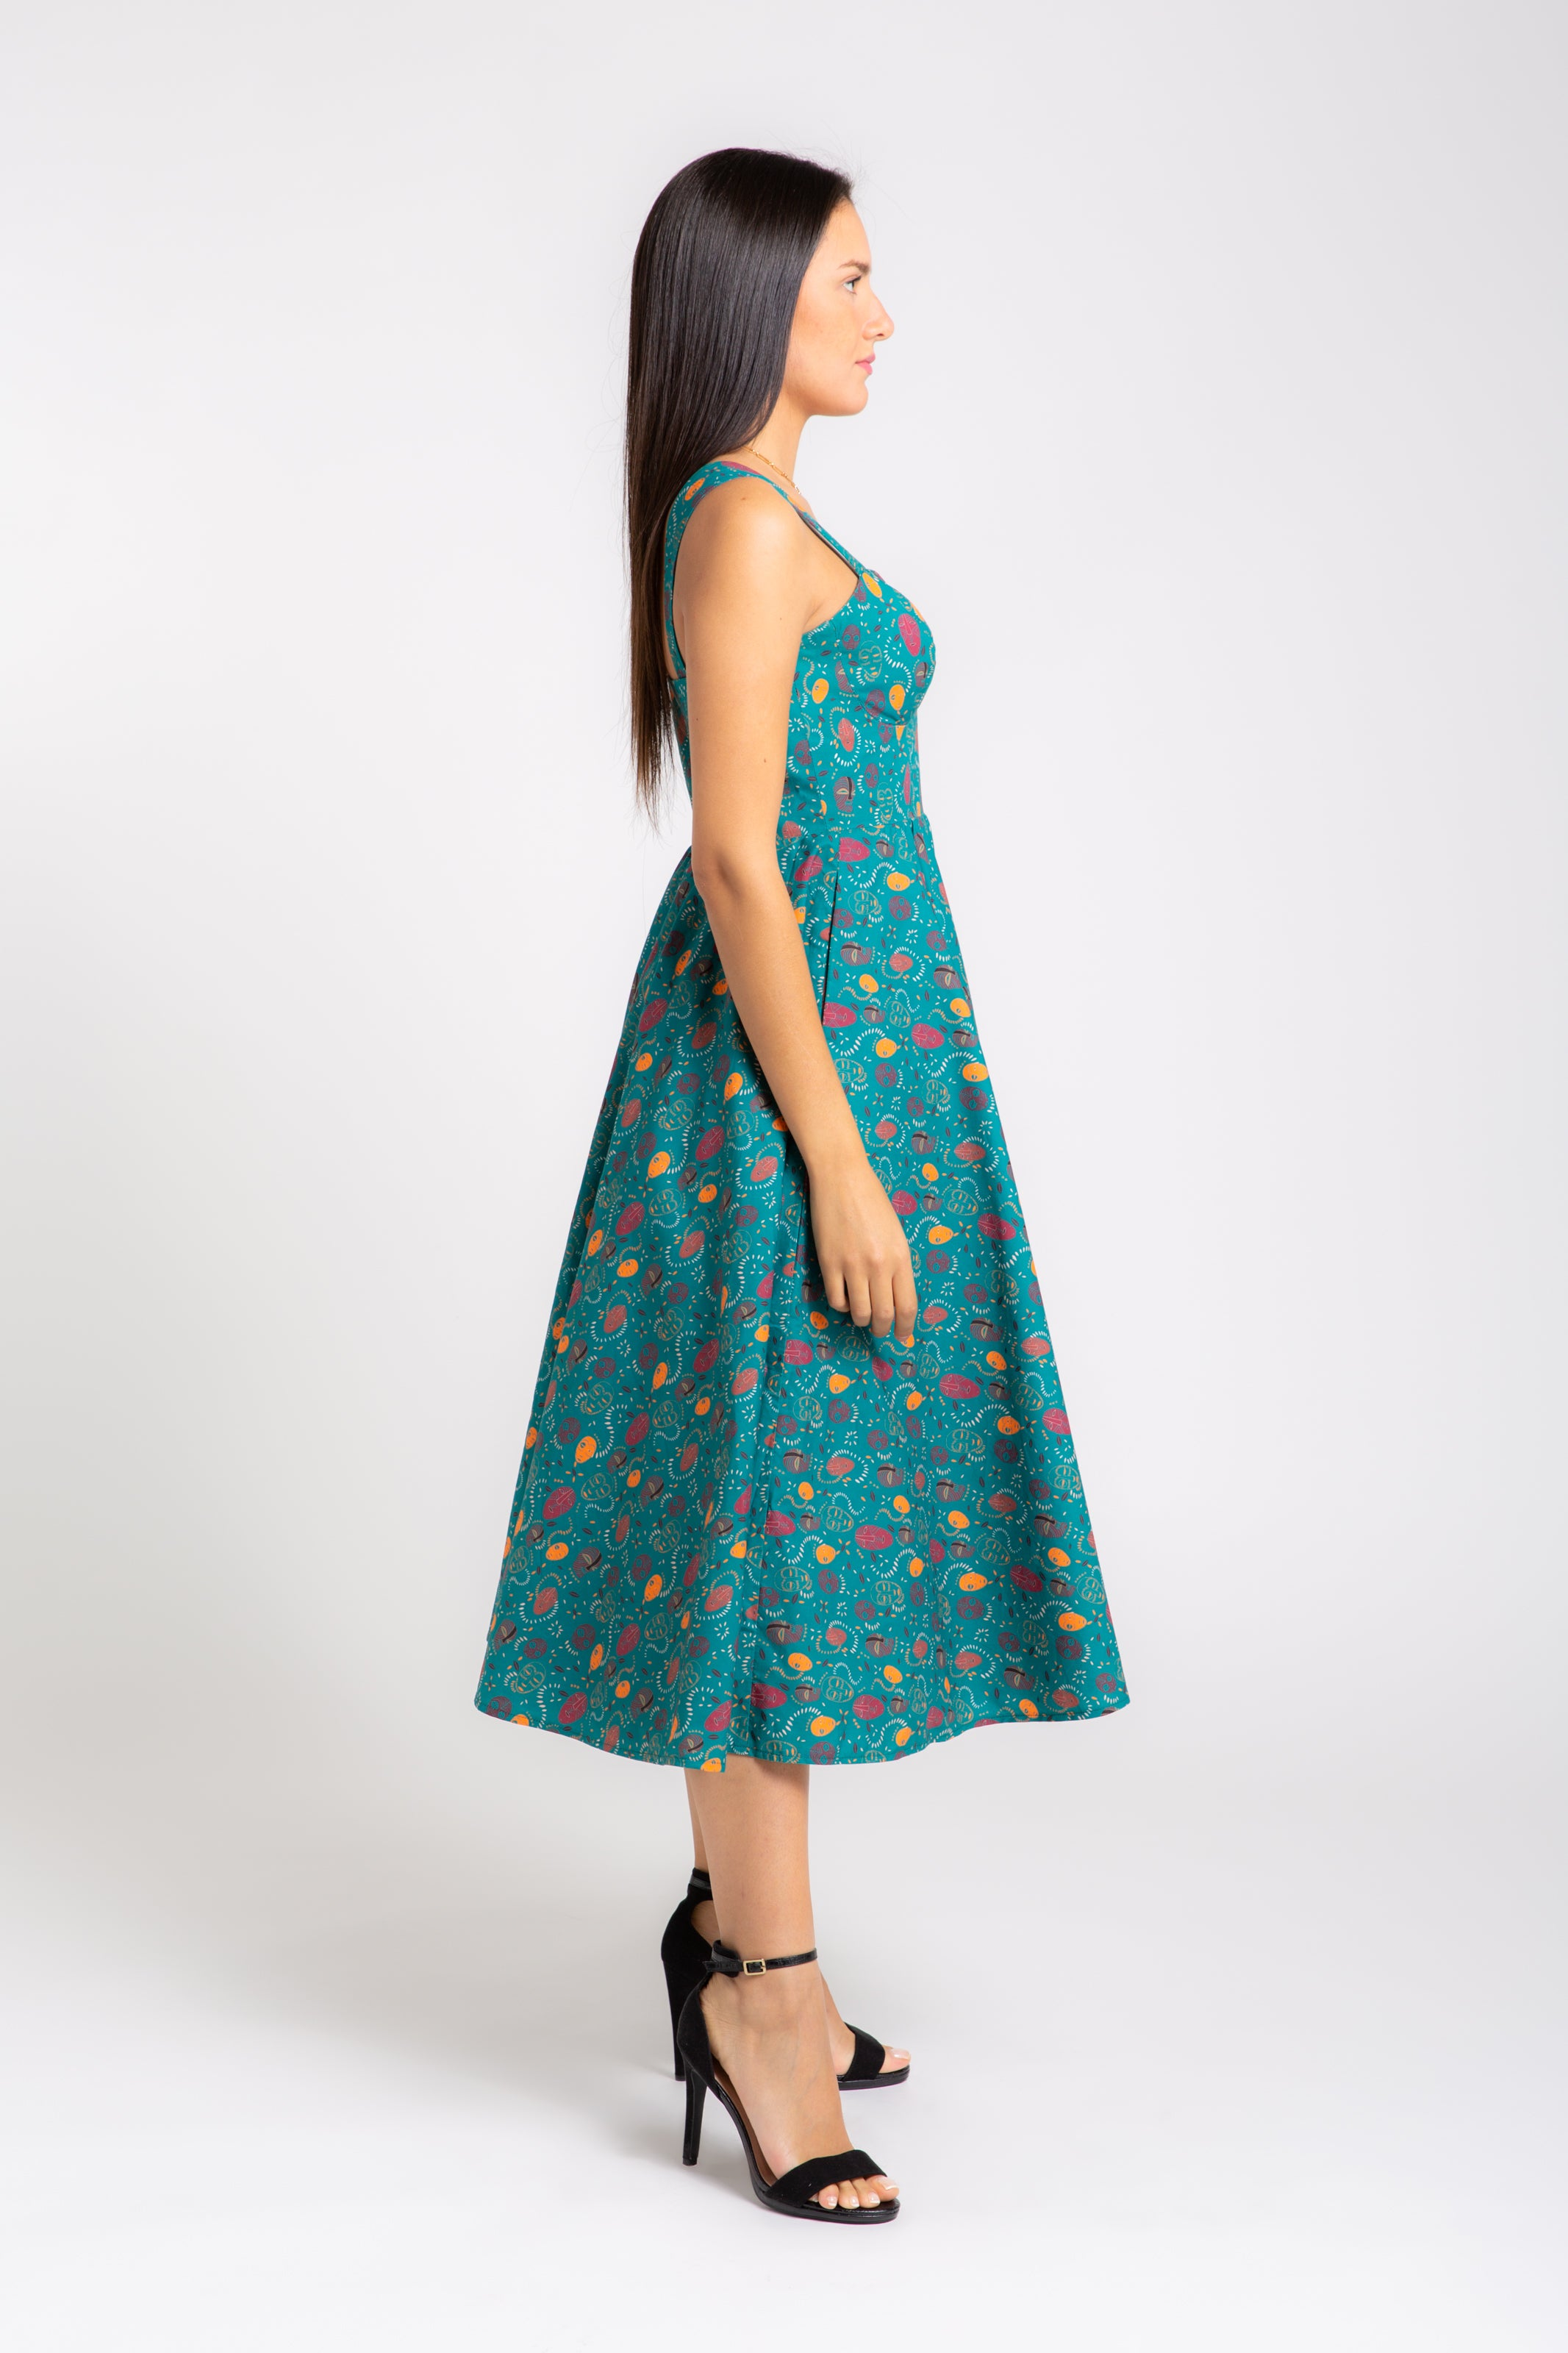 MAKEDA  Printed Cotton Midi Dress